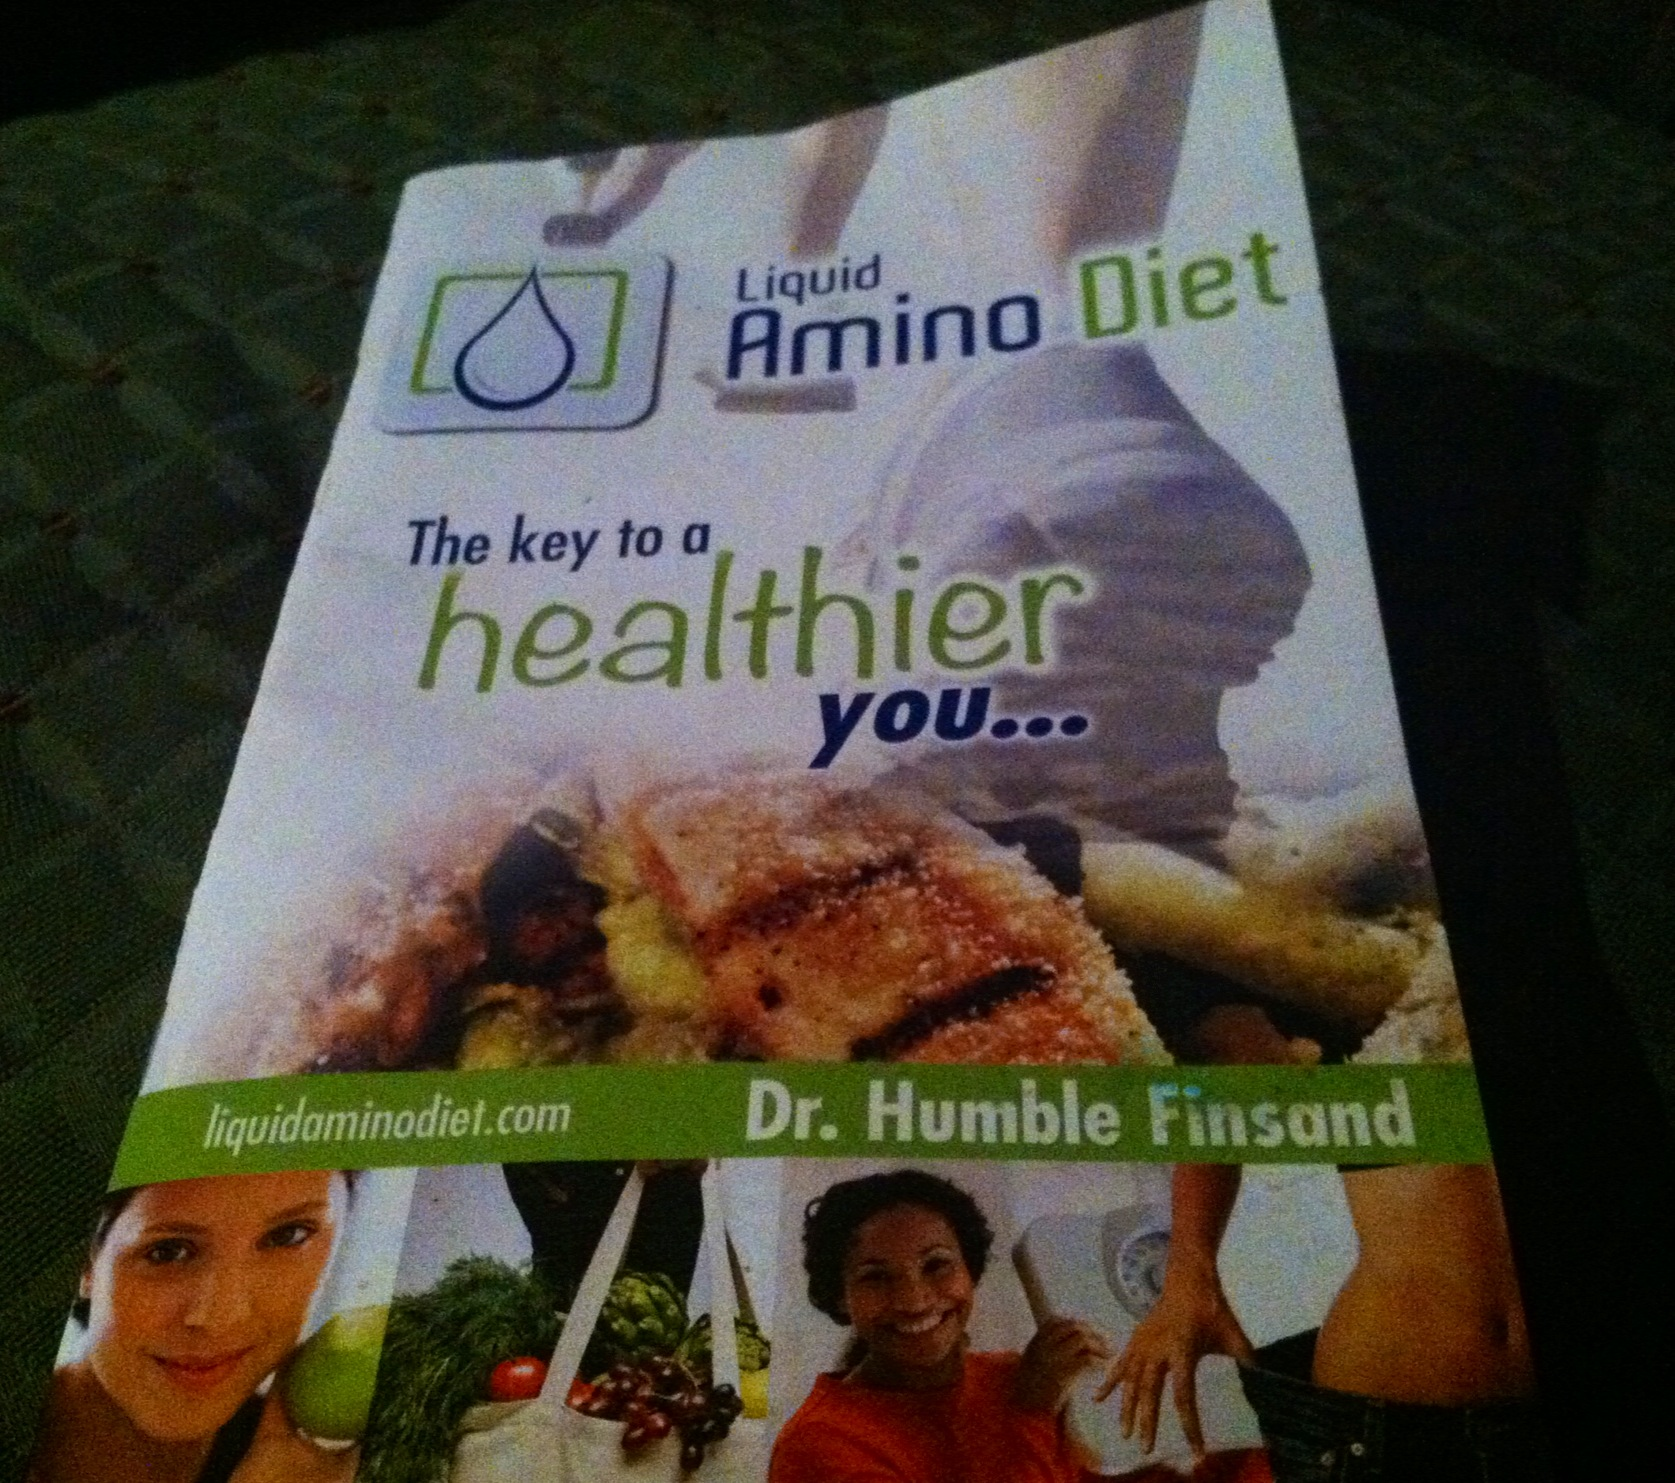 Liquid Amino Diet Booklet